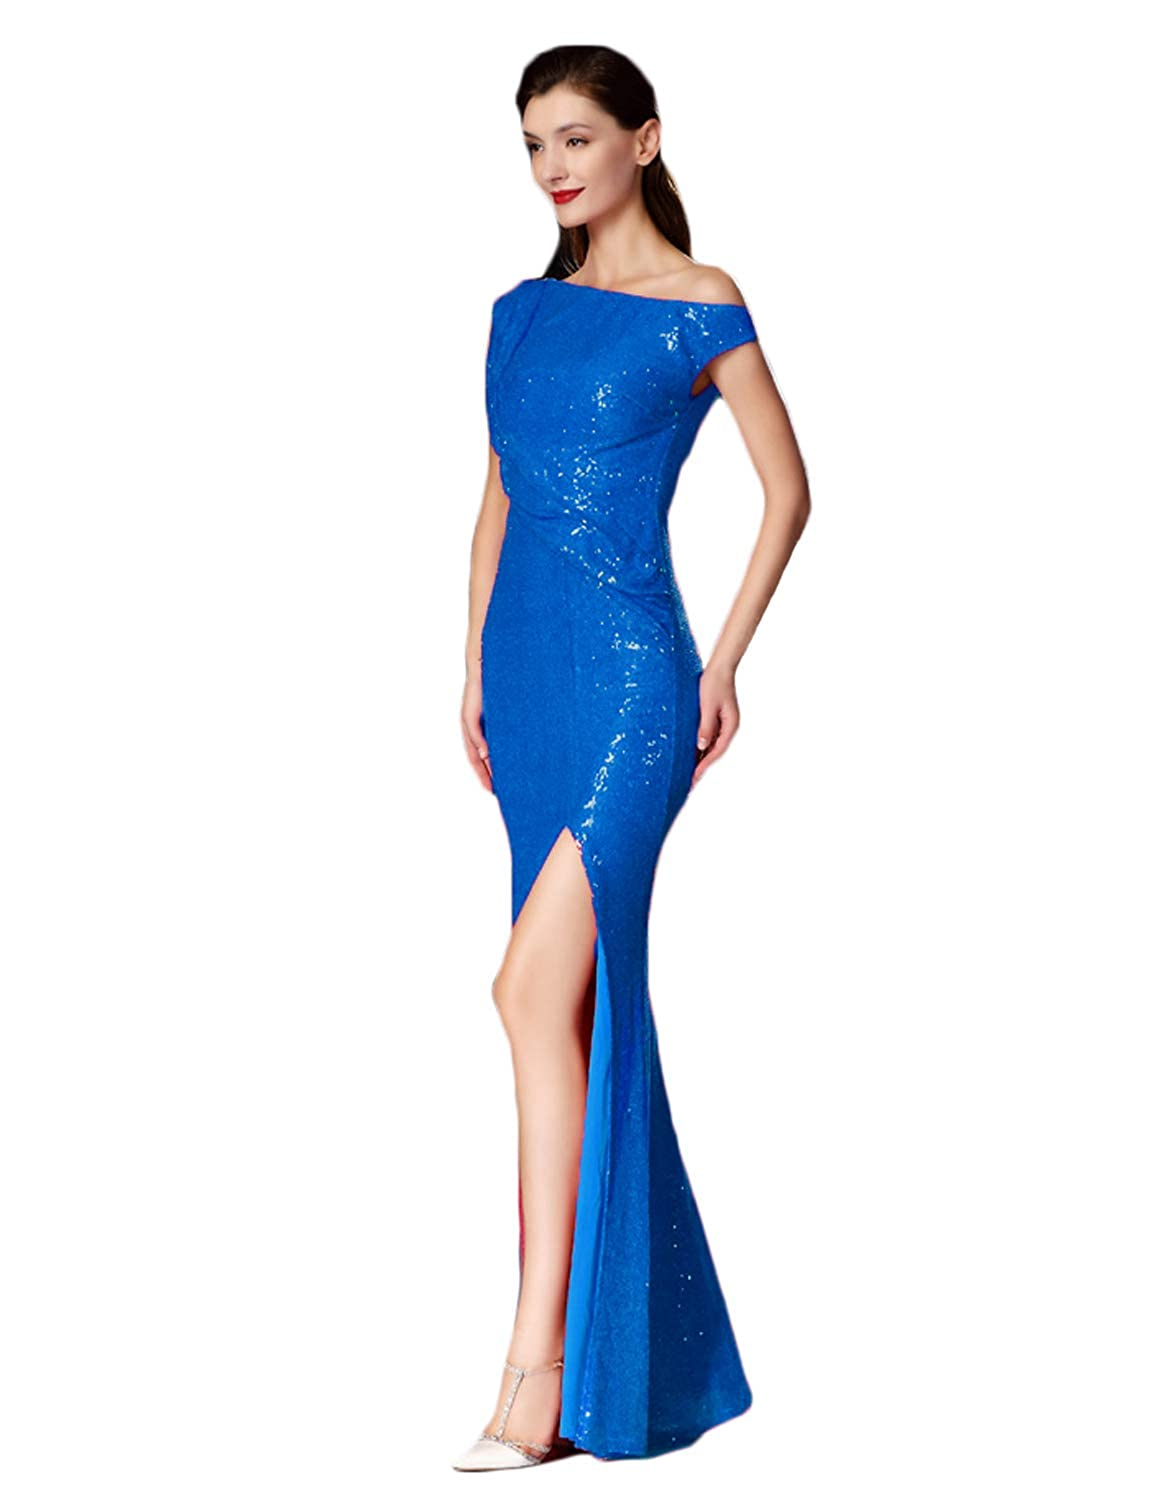 bluee a CIRCLEWLD Sweetheart Ruched Sequin Gown with Side Slit Long Prom Evening Dresses Bridesmaid Dress E195